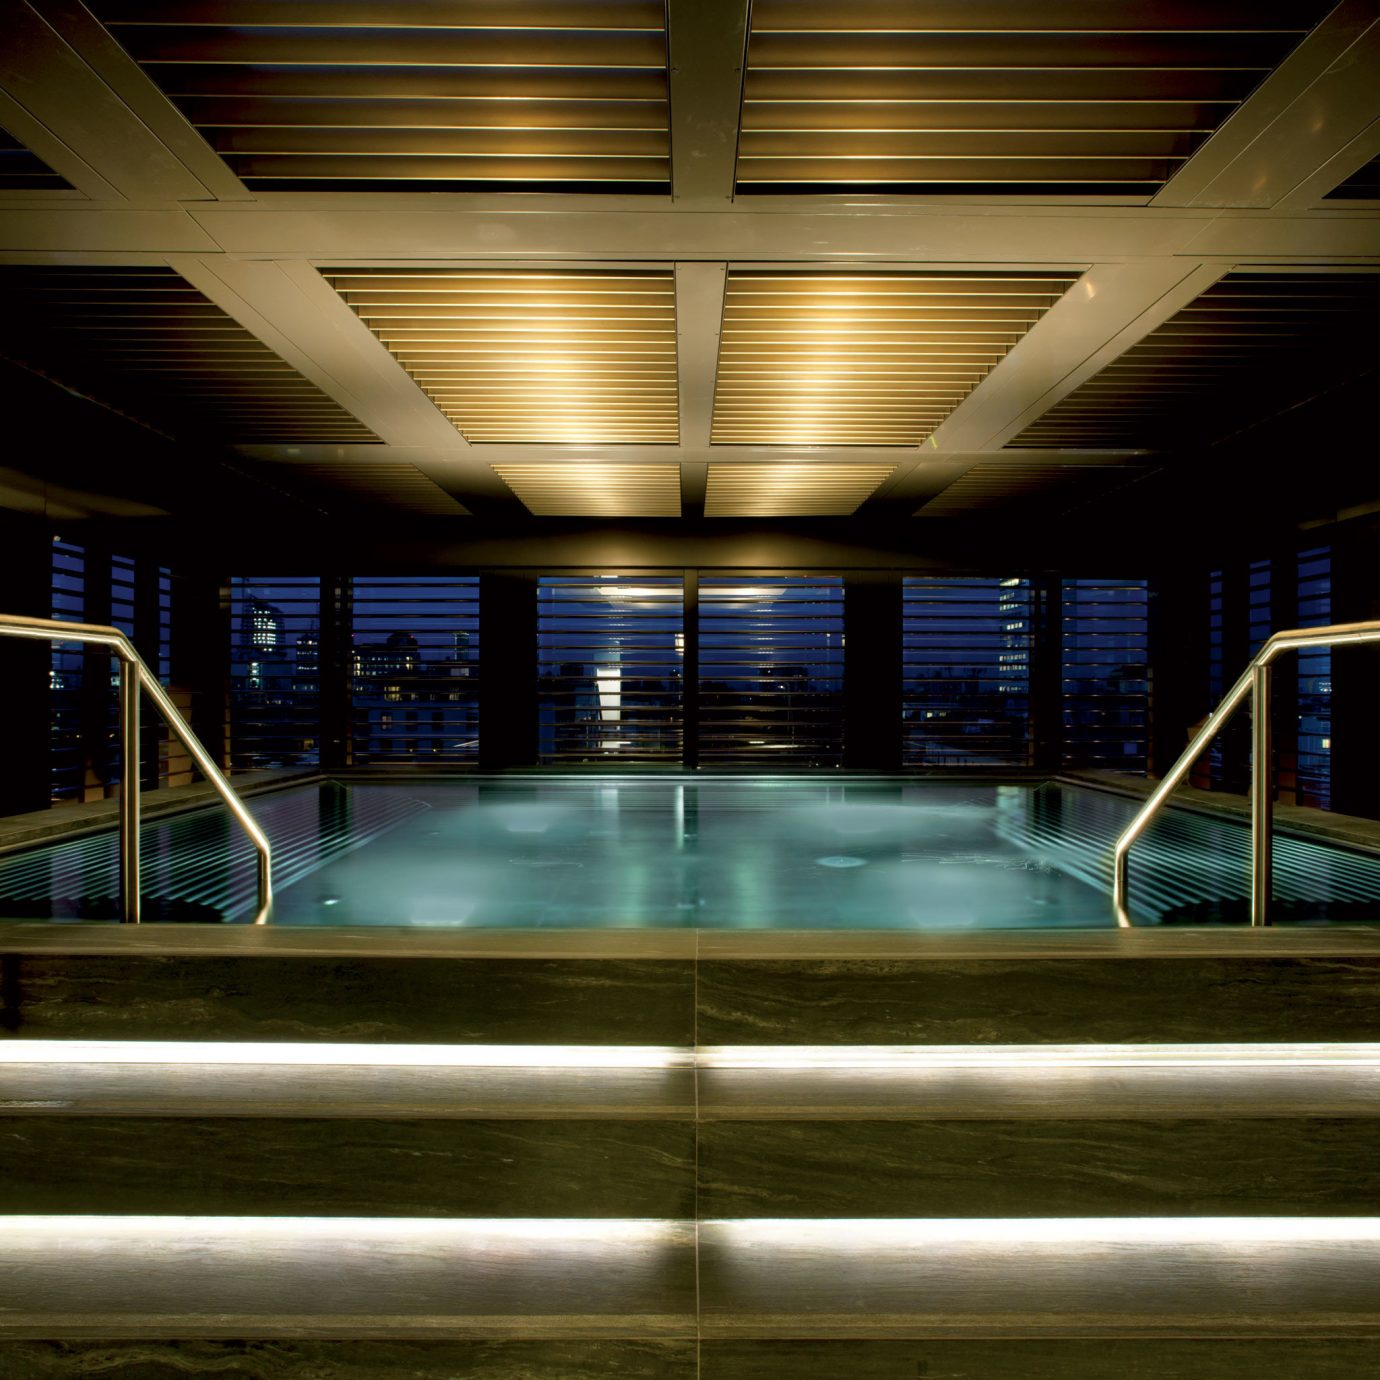 Elegant Hotels Italy Luxury Milan Pool Scenic views night light Architecture swimming pool lighting subway